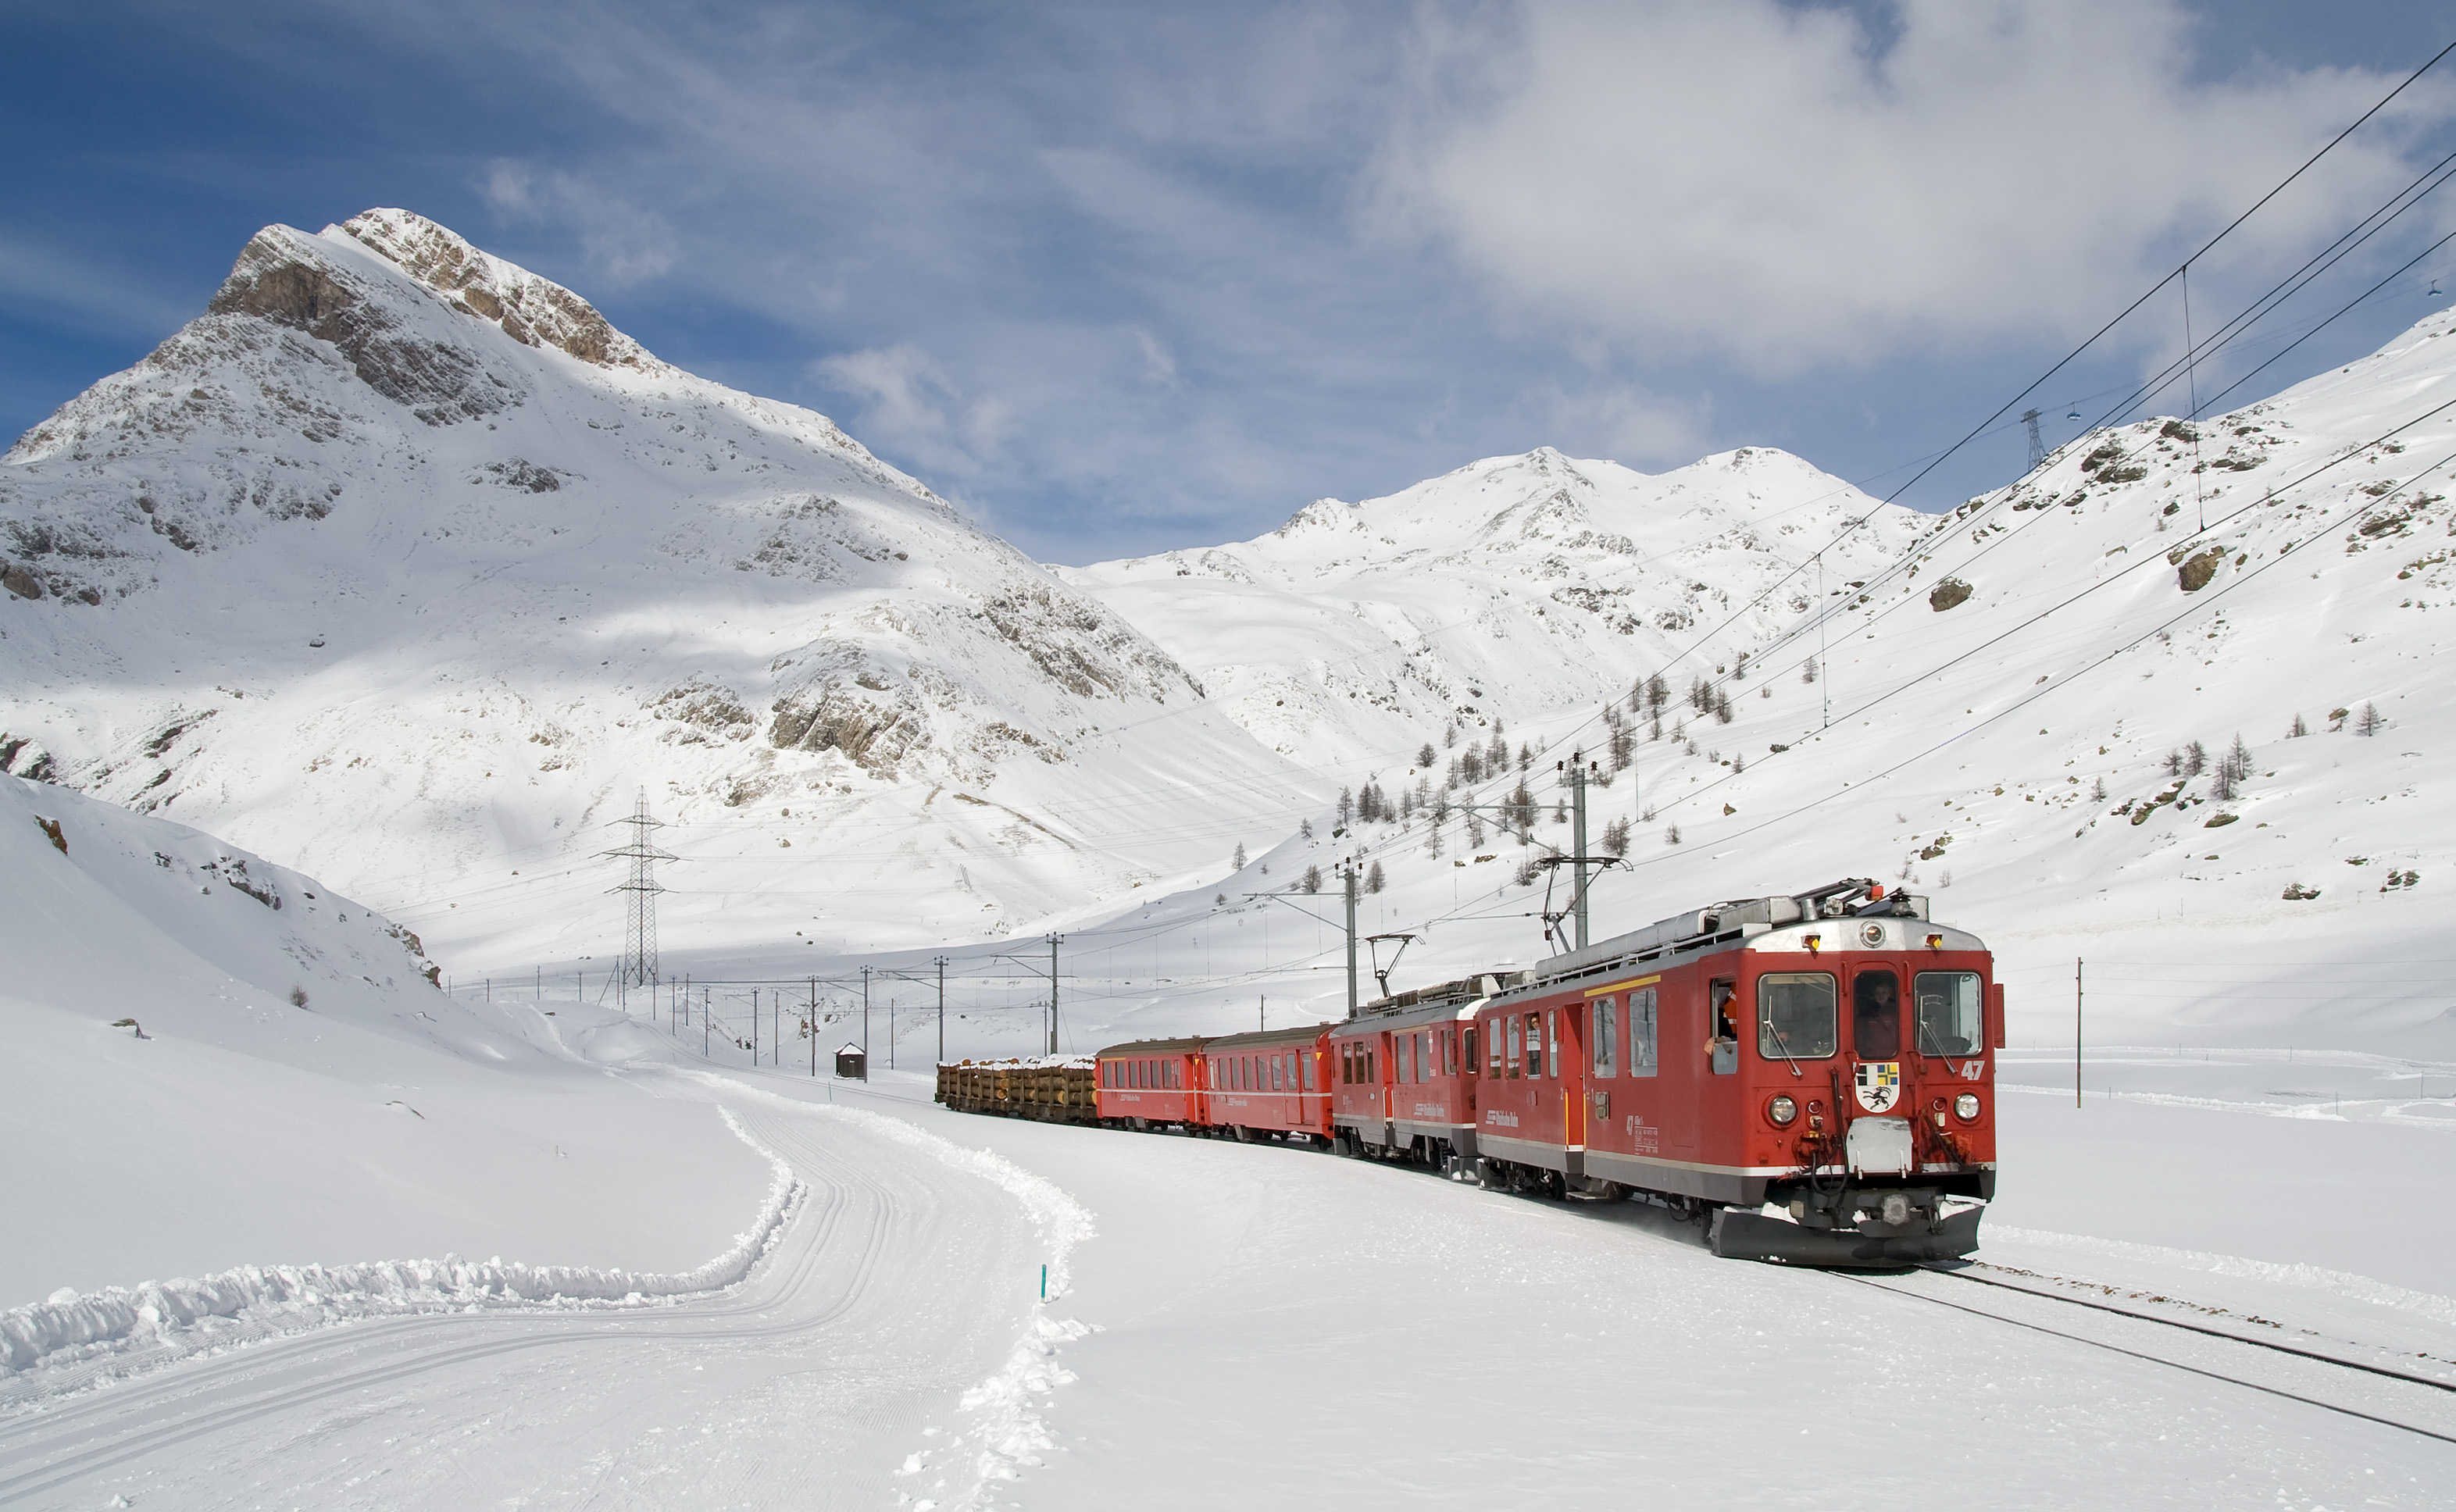 Bernina Express in Winter_by Kabelleger_David Gubler_Public domain_via Wikimedia Commons